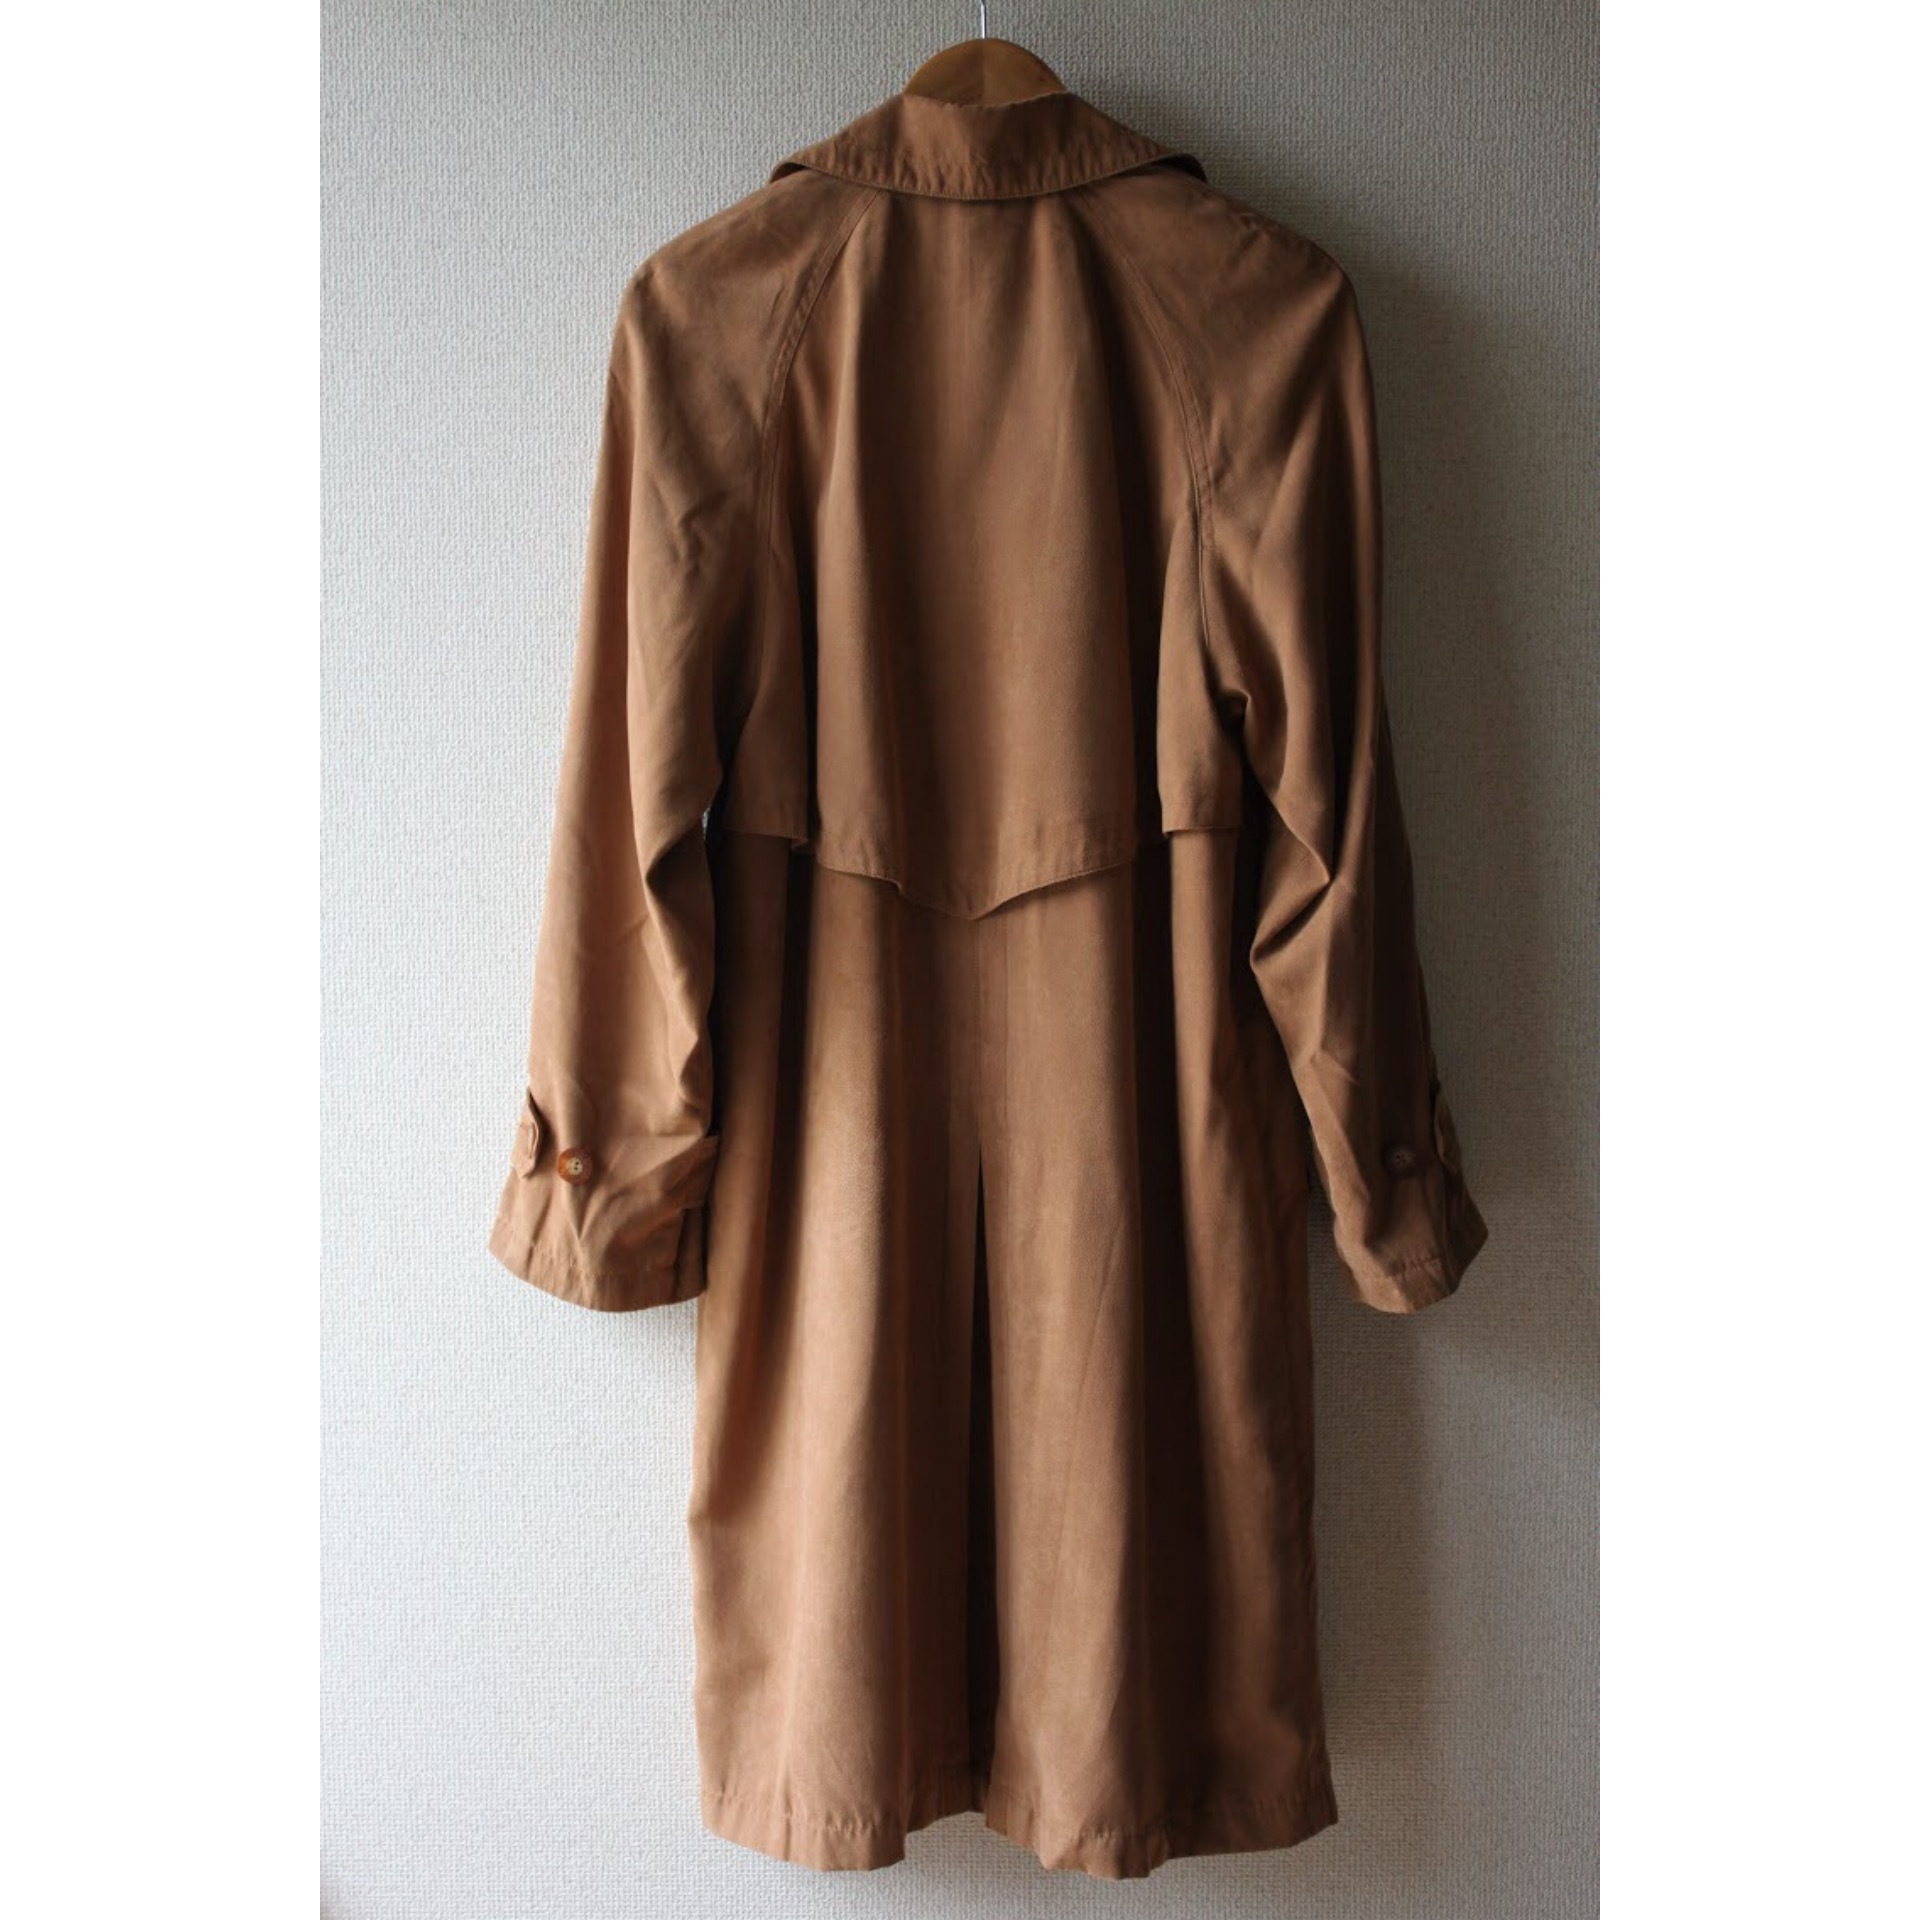 Vintage fake suede trench coat